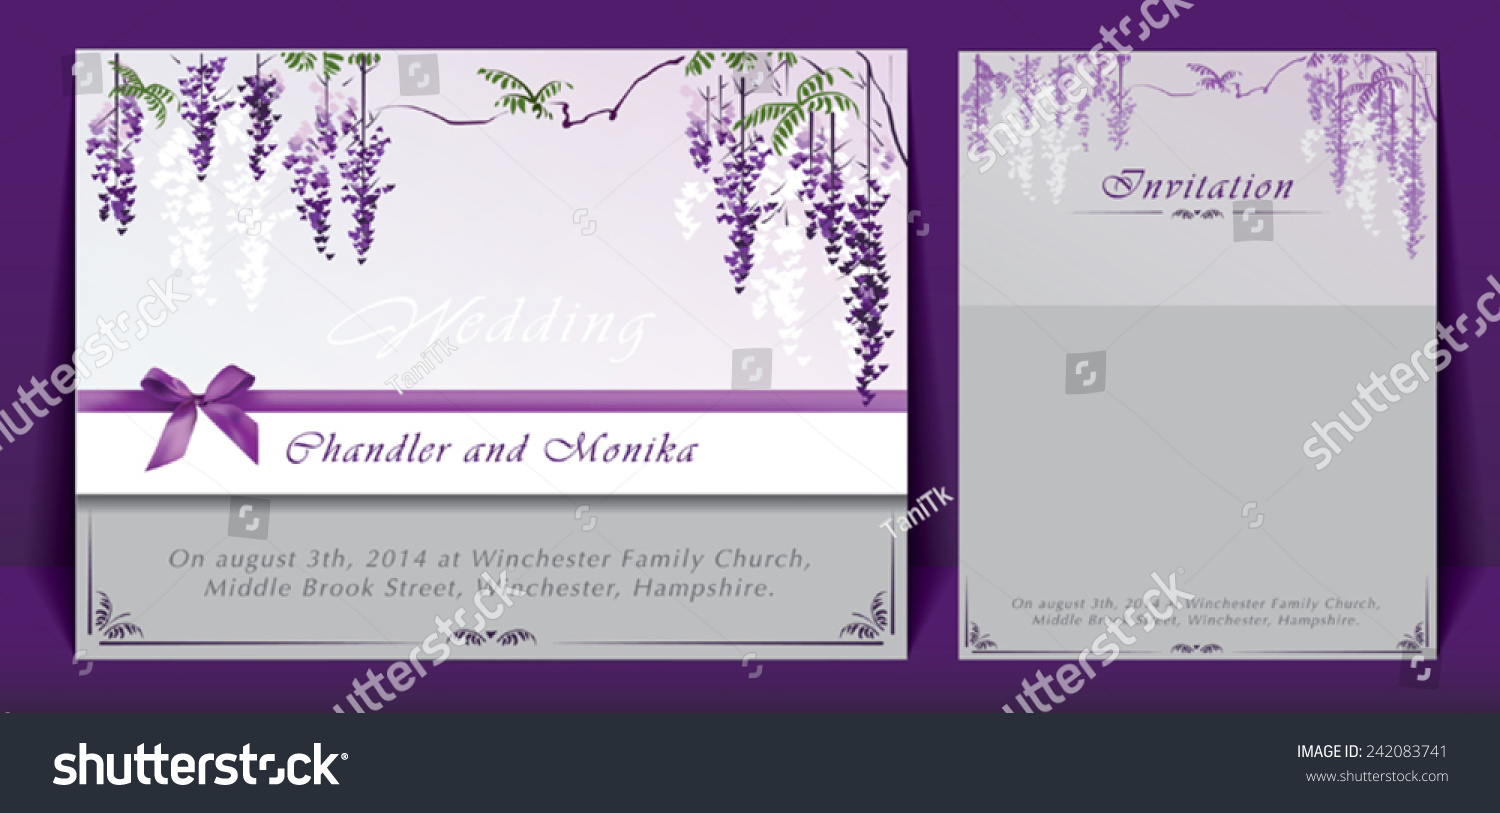 Wedding Invitation Decorated Bunches Flowers Bow Stock Photo (Photo ...